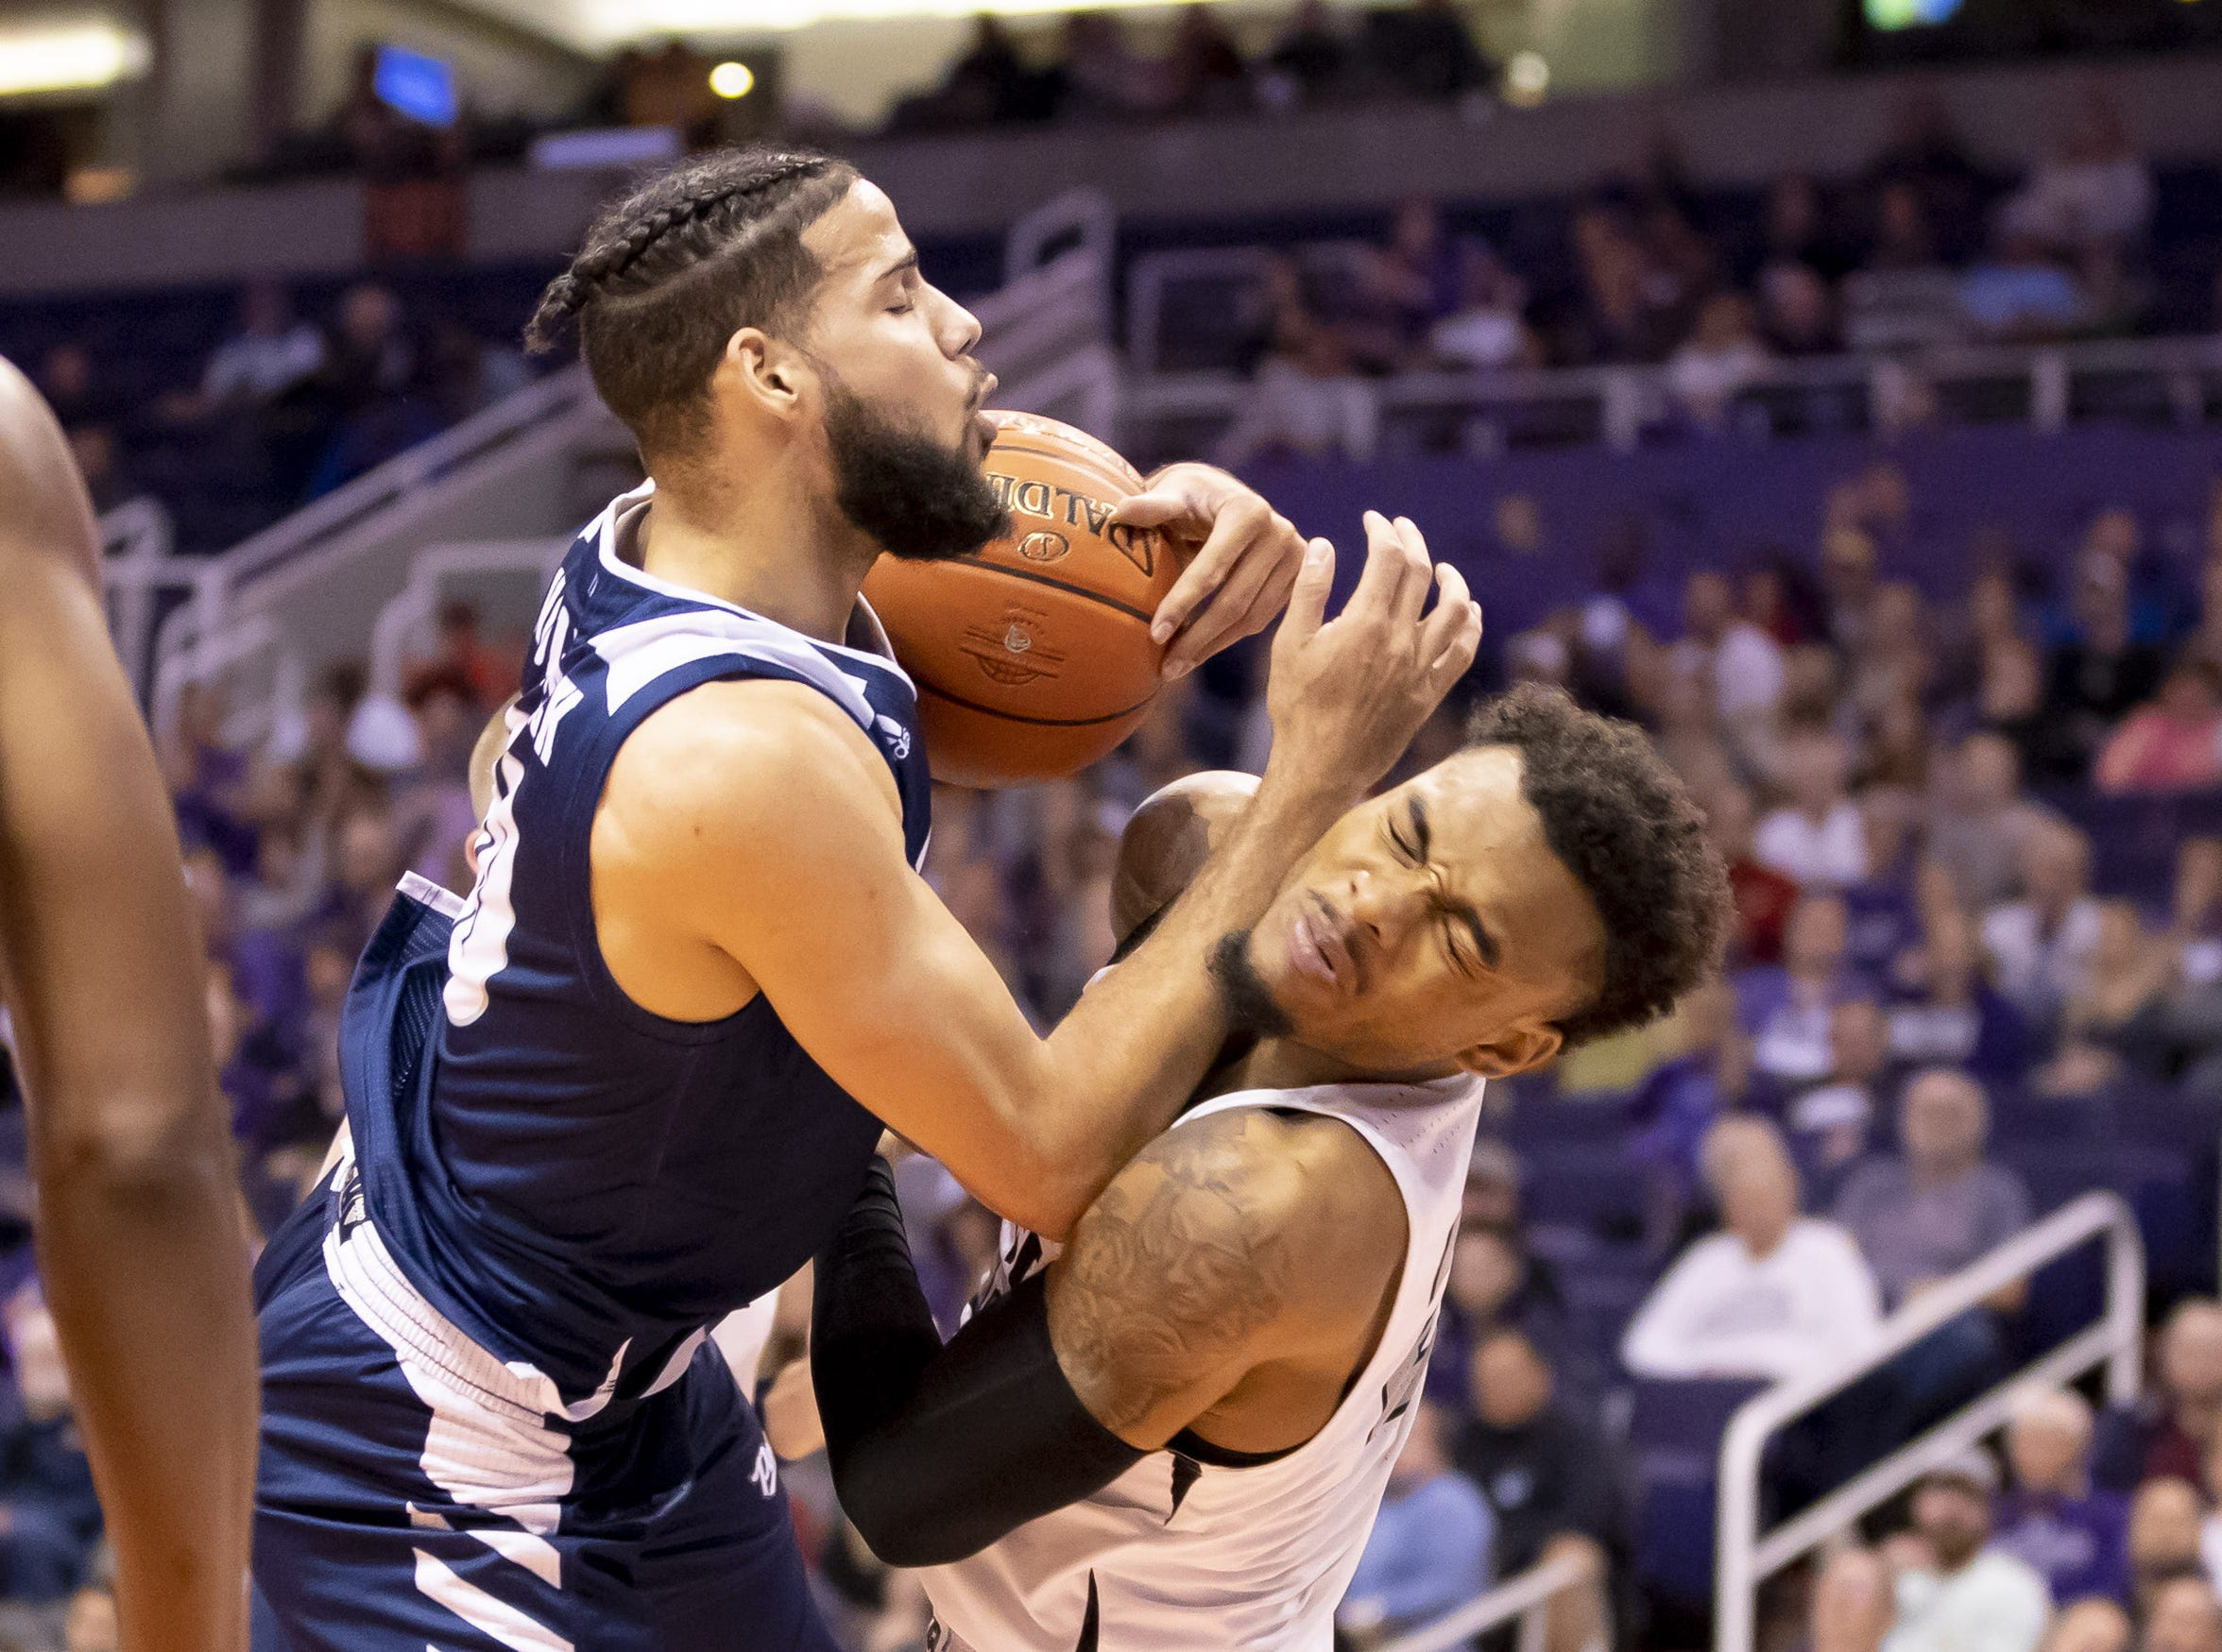 Forward Caleb Martin (10) of Nevada Wolf Pack and guard Carlos Johnson (23) of the Grand Canyon Antelopes collide during the 2018 Jerry Colangelo Classic at Talking Stick Resort Arena on Sunday, December 9, 2018 in Phoenix, Arizona.